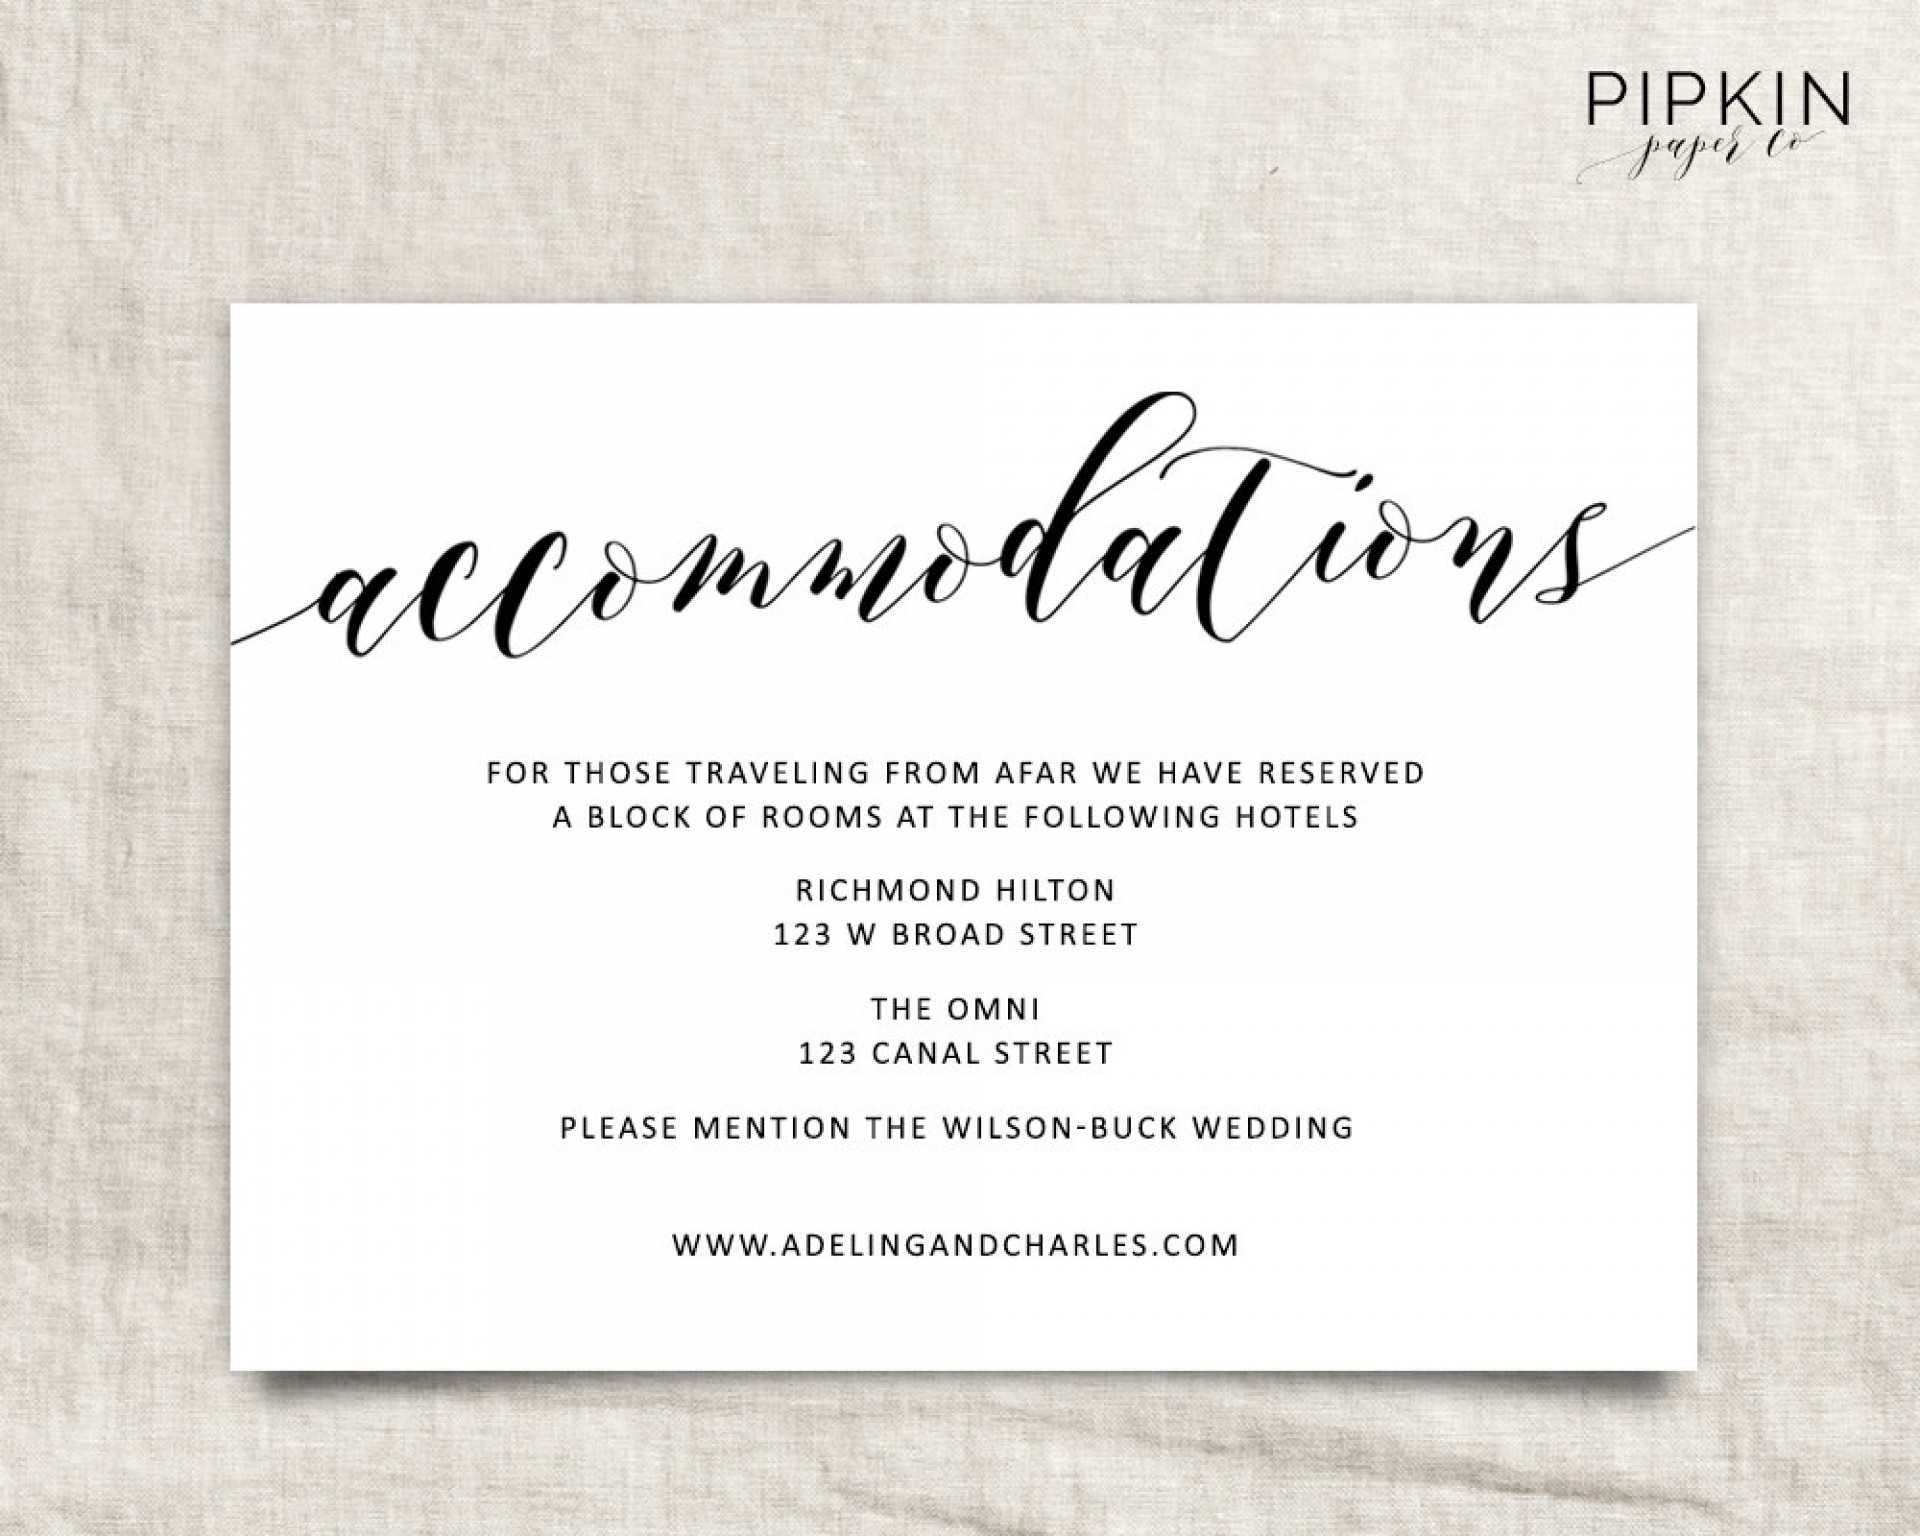 005 Free Wedding Accommodation Card Template Ideas Top Hotel Intended For Wedding Hotel Information Card Template